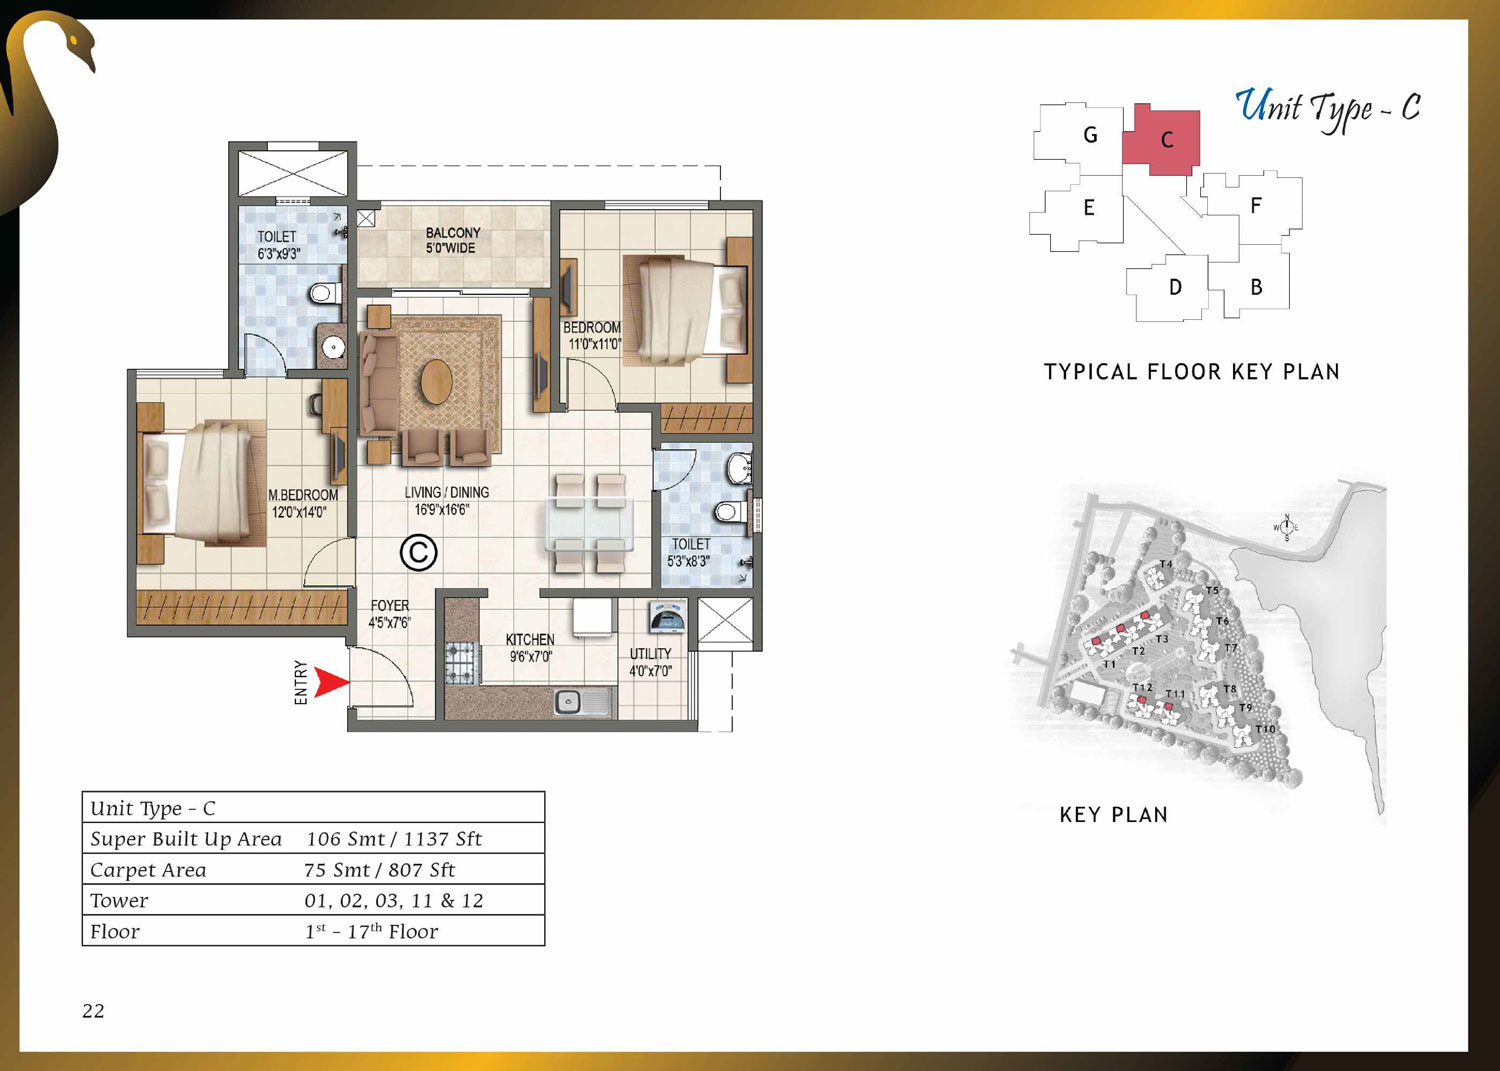 Type C - 1137 Sq Ft